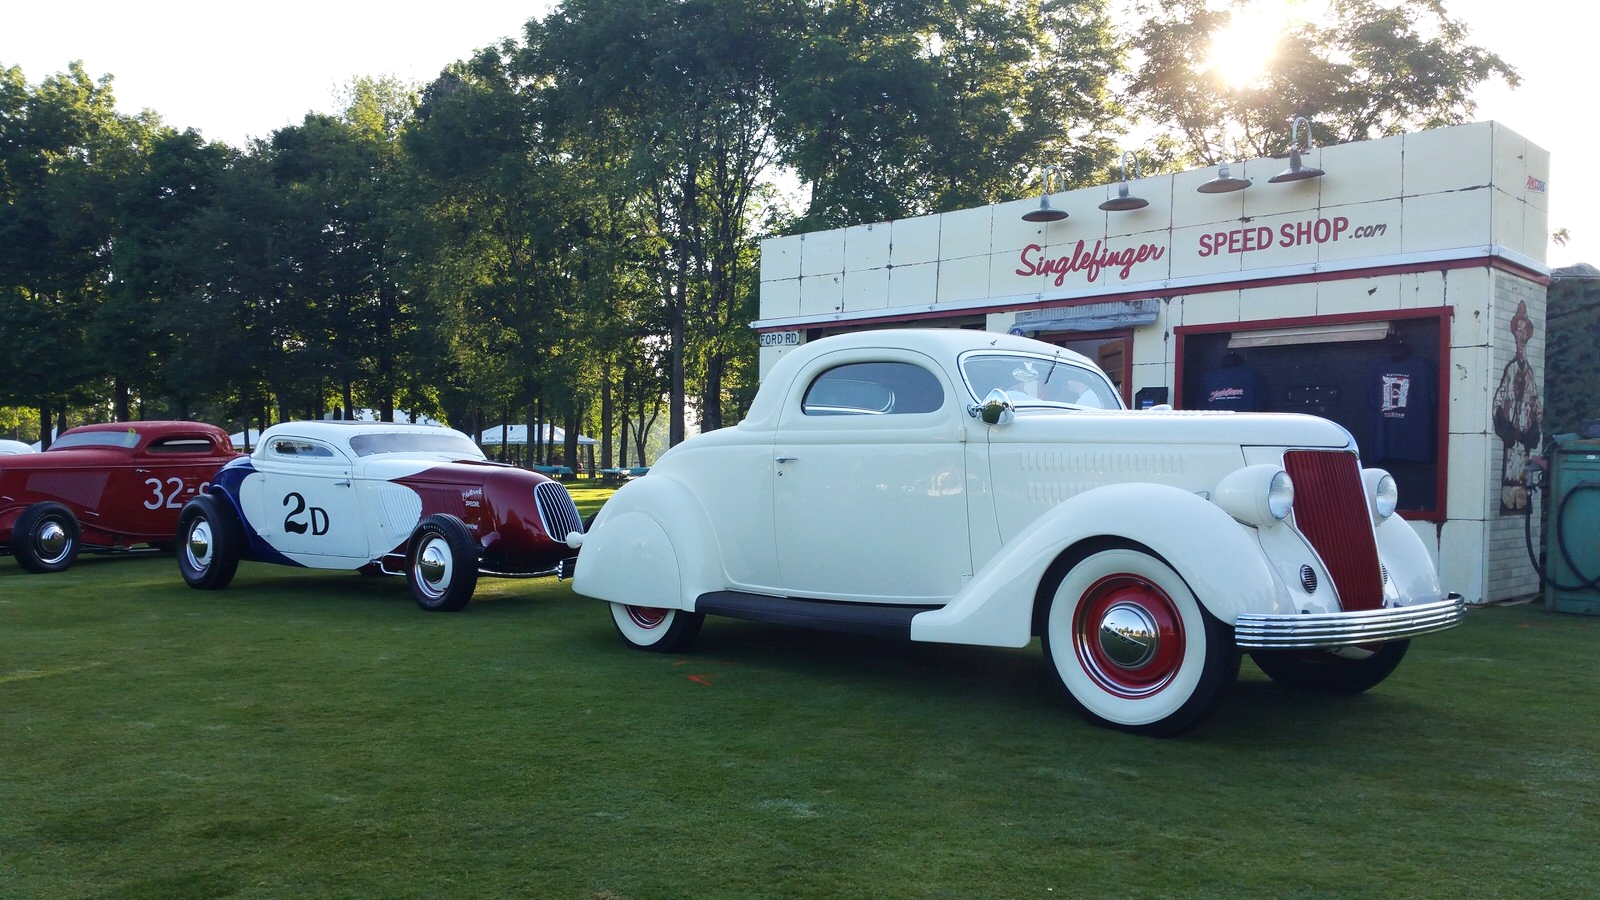 South City Rod & Custom - at Concours d'Elegance of America in Plymouth, MI